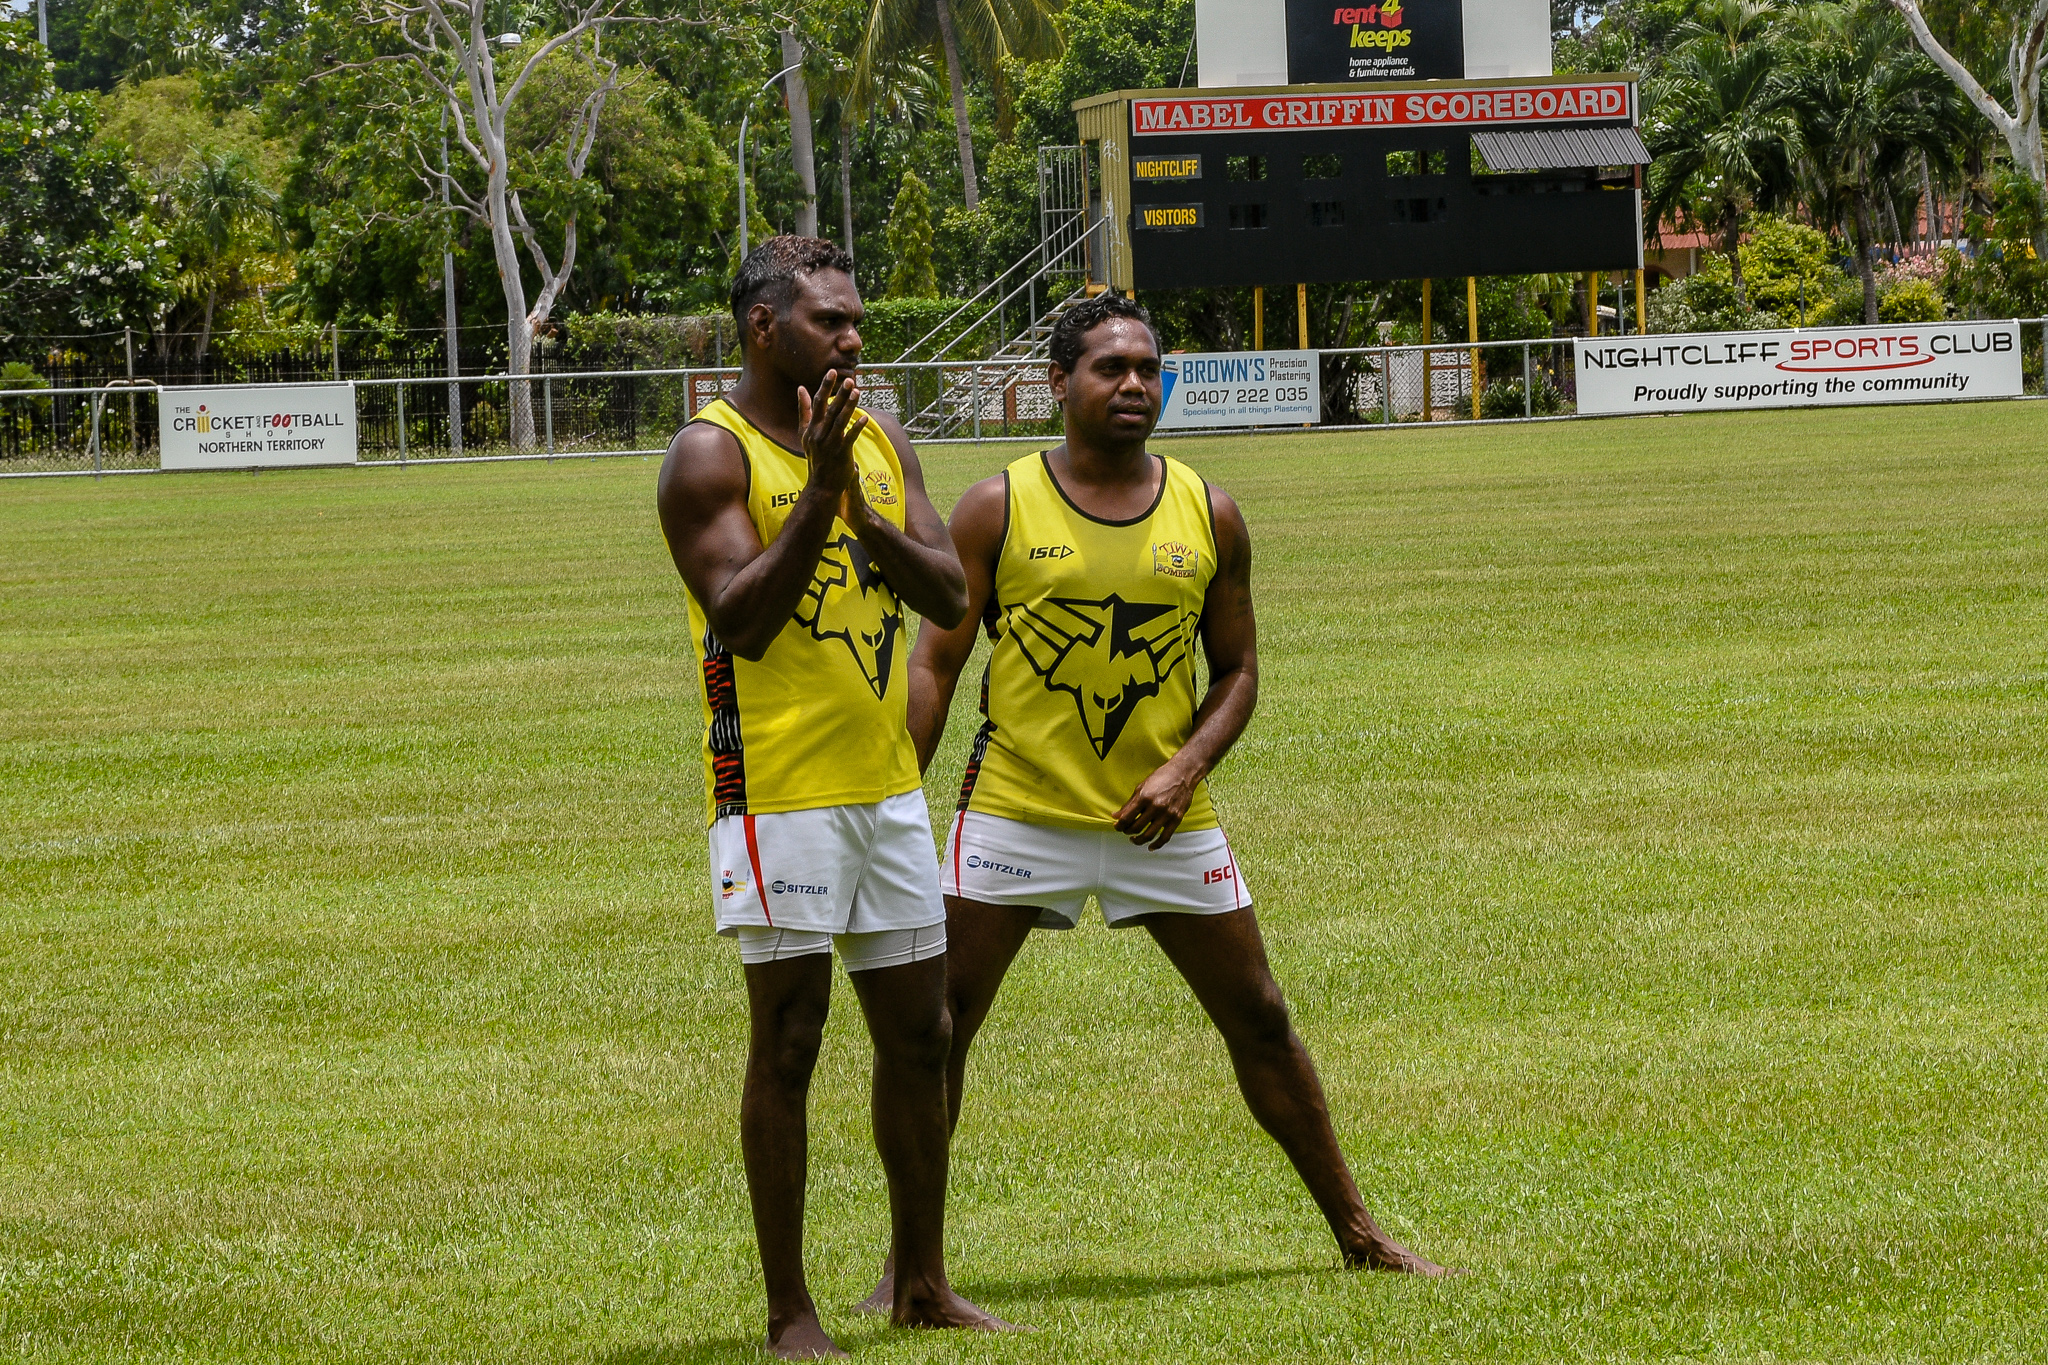 Patrick Heenan Jnr (right) stretches during a bit of pre-game kick to kick ahead of the Bombers' round 15 game against Nightcliff